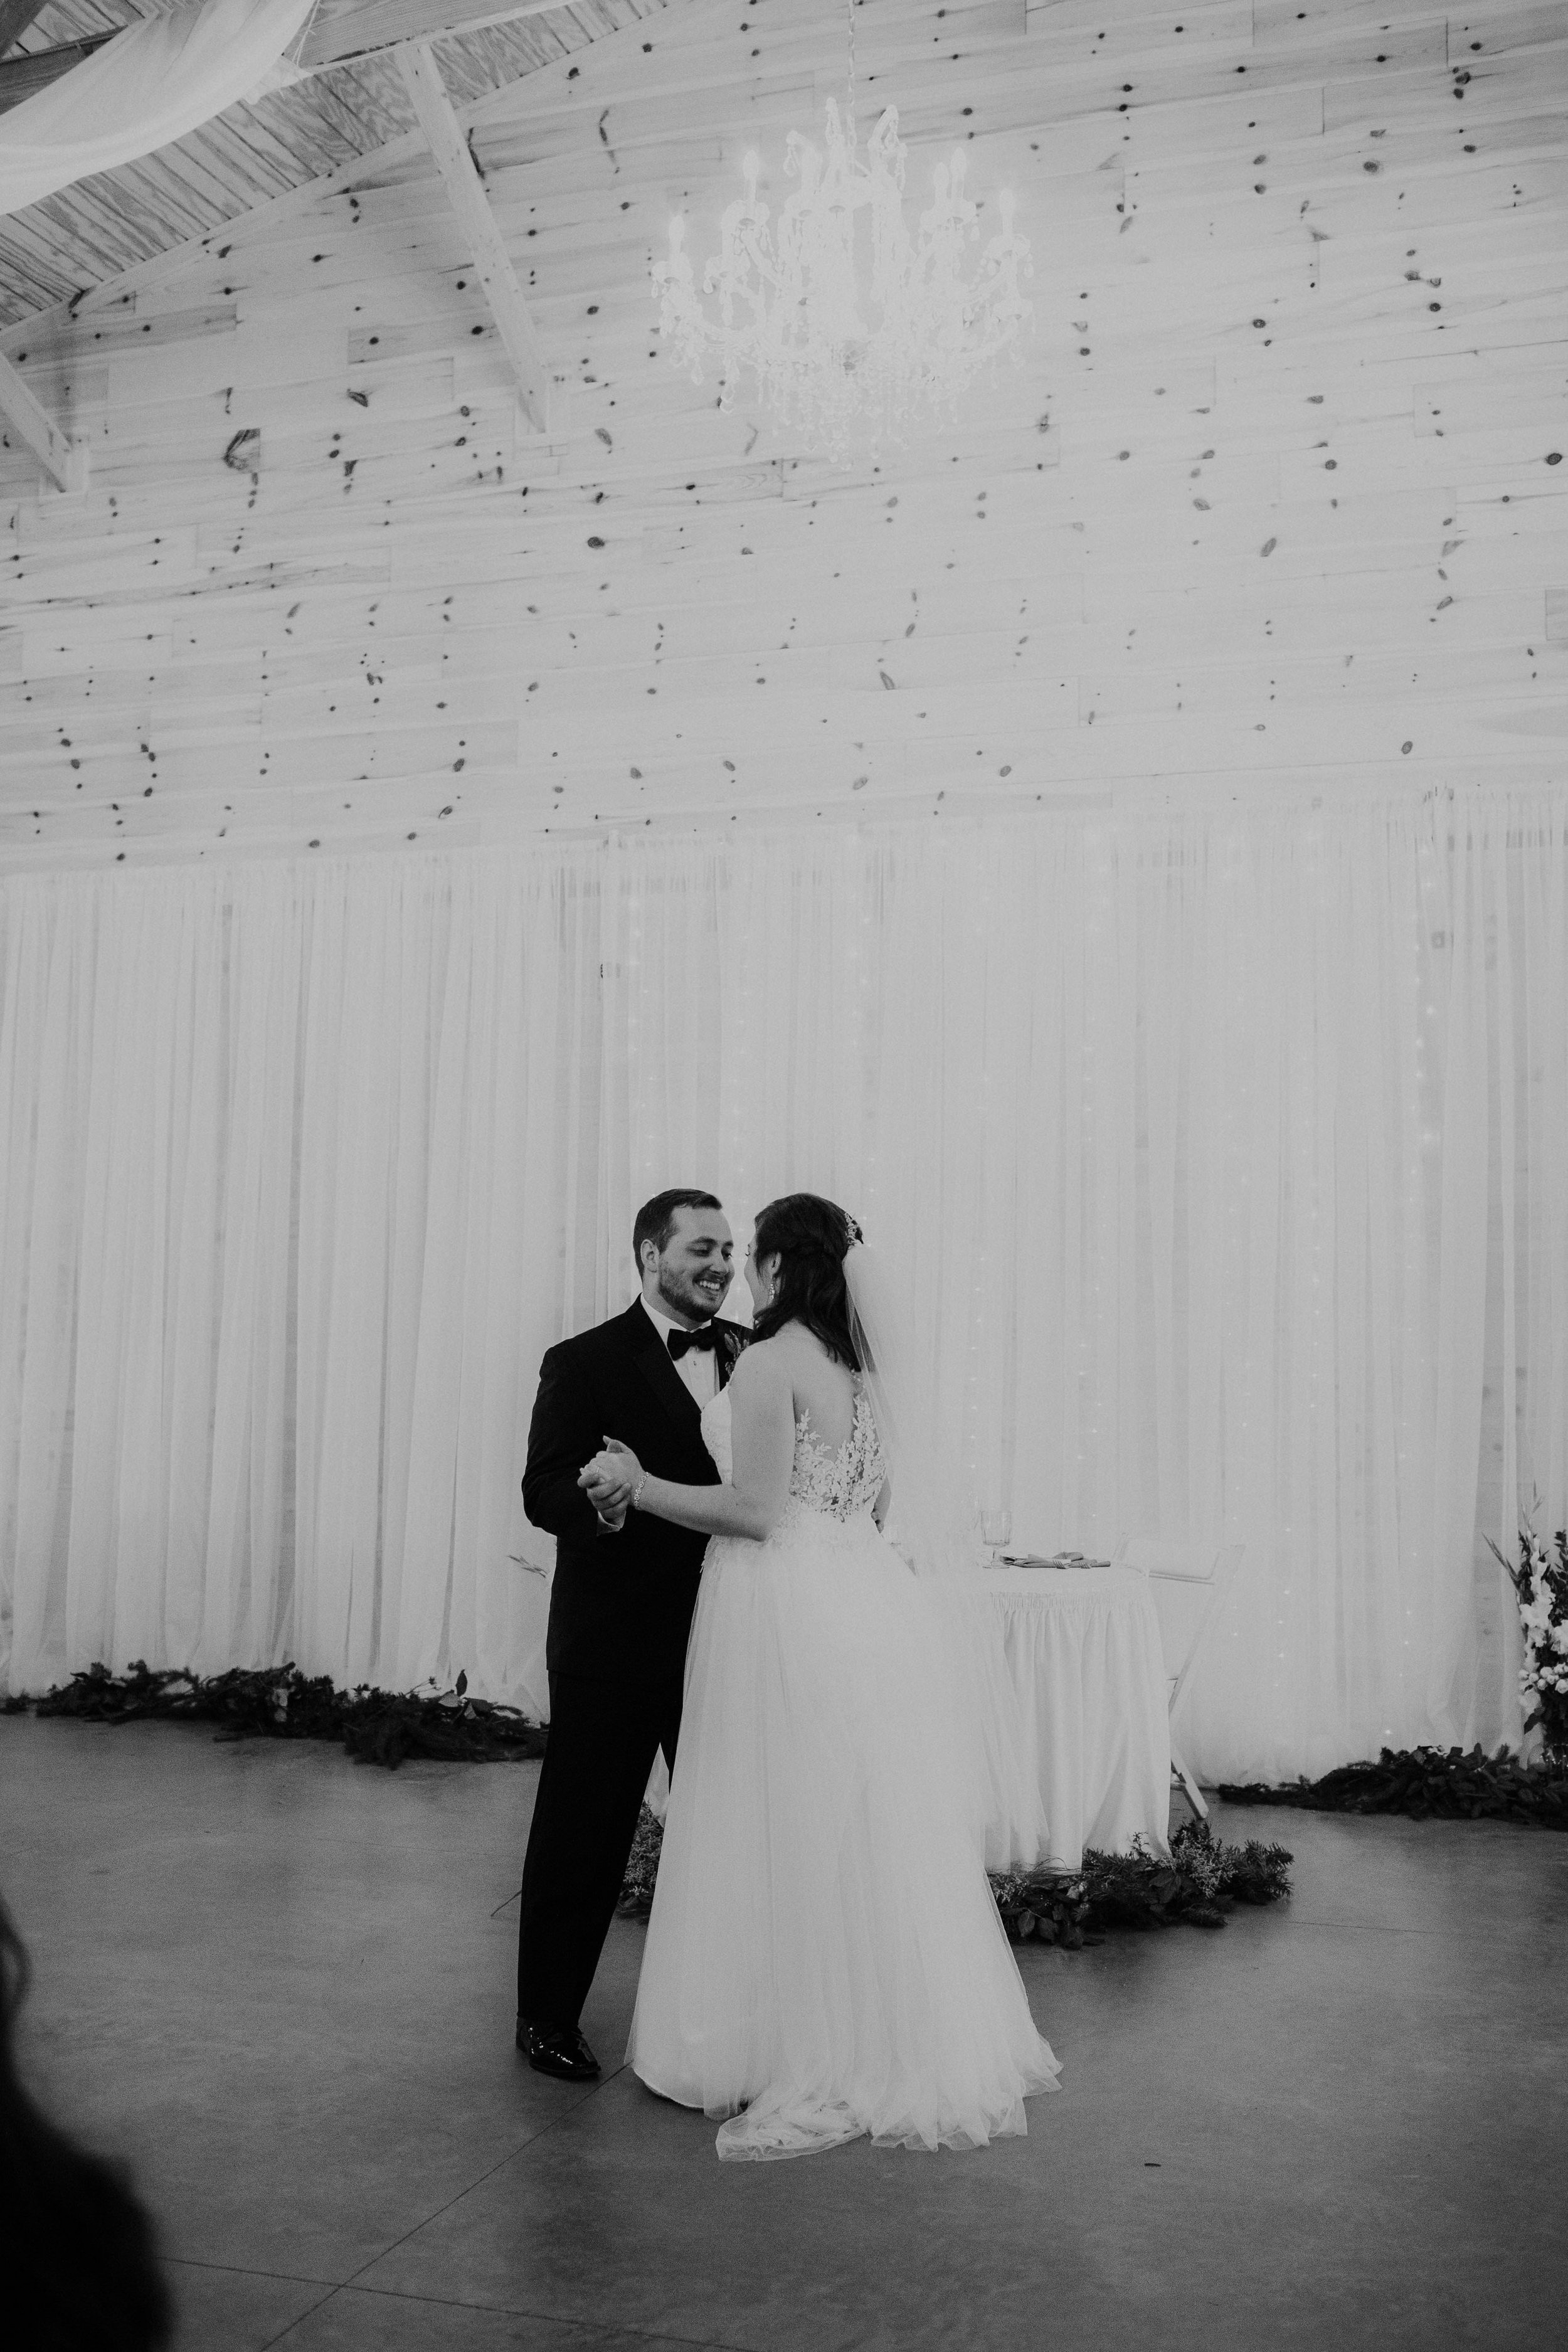 columbus ohio wedding photographer grace e jones photography169.jpg